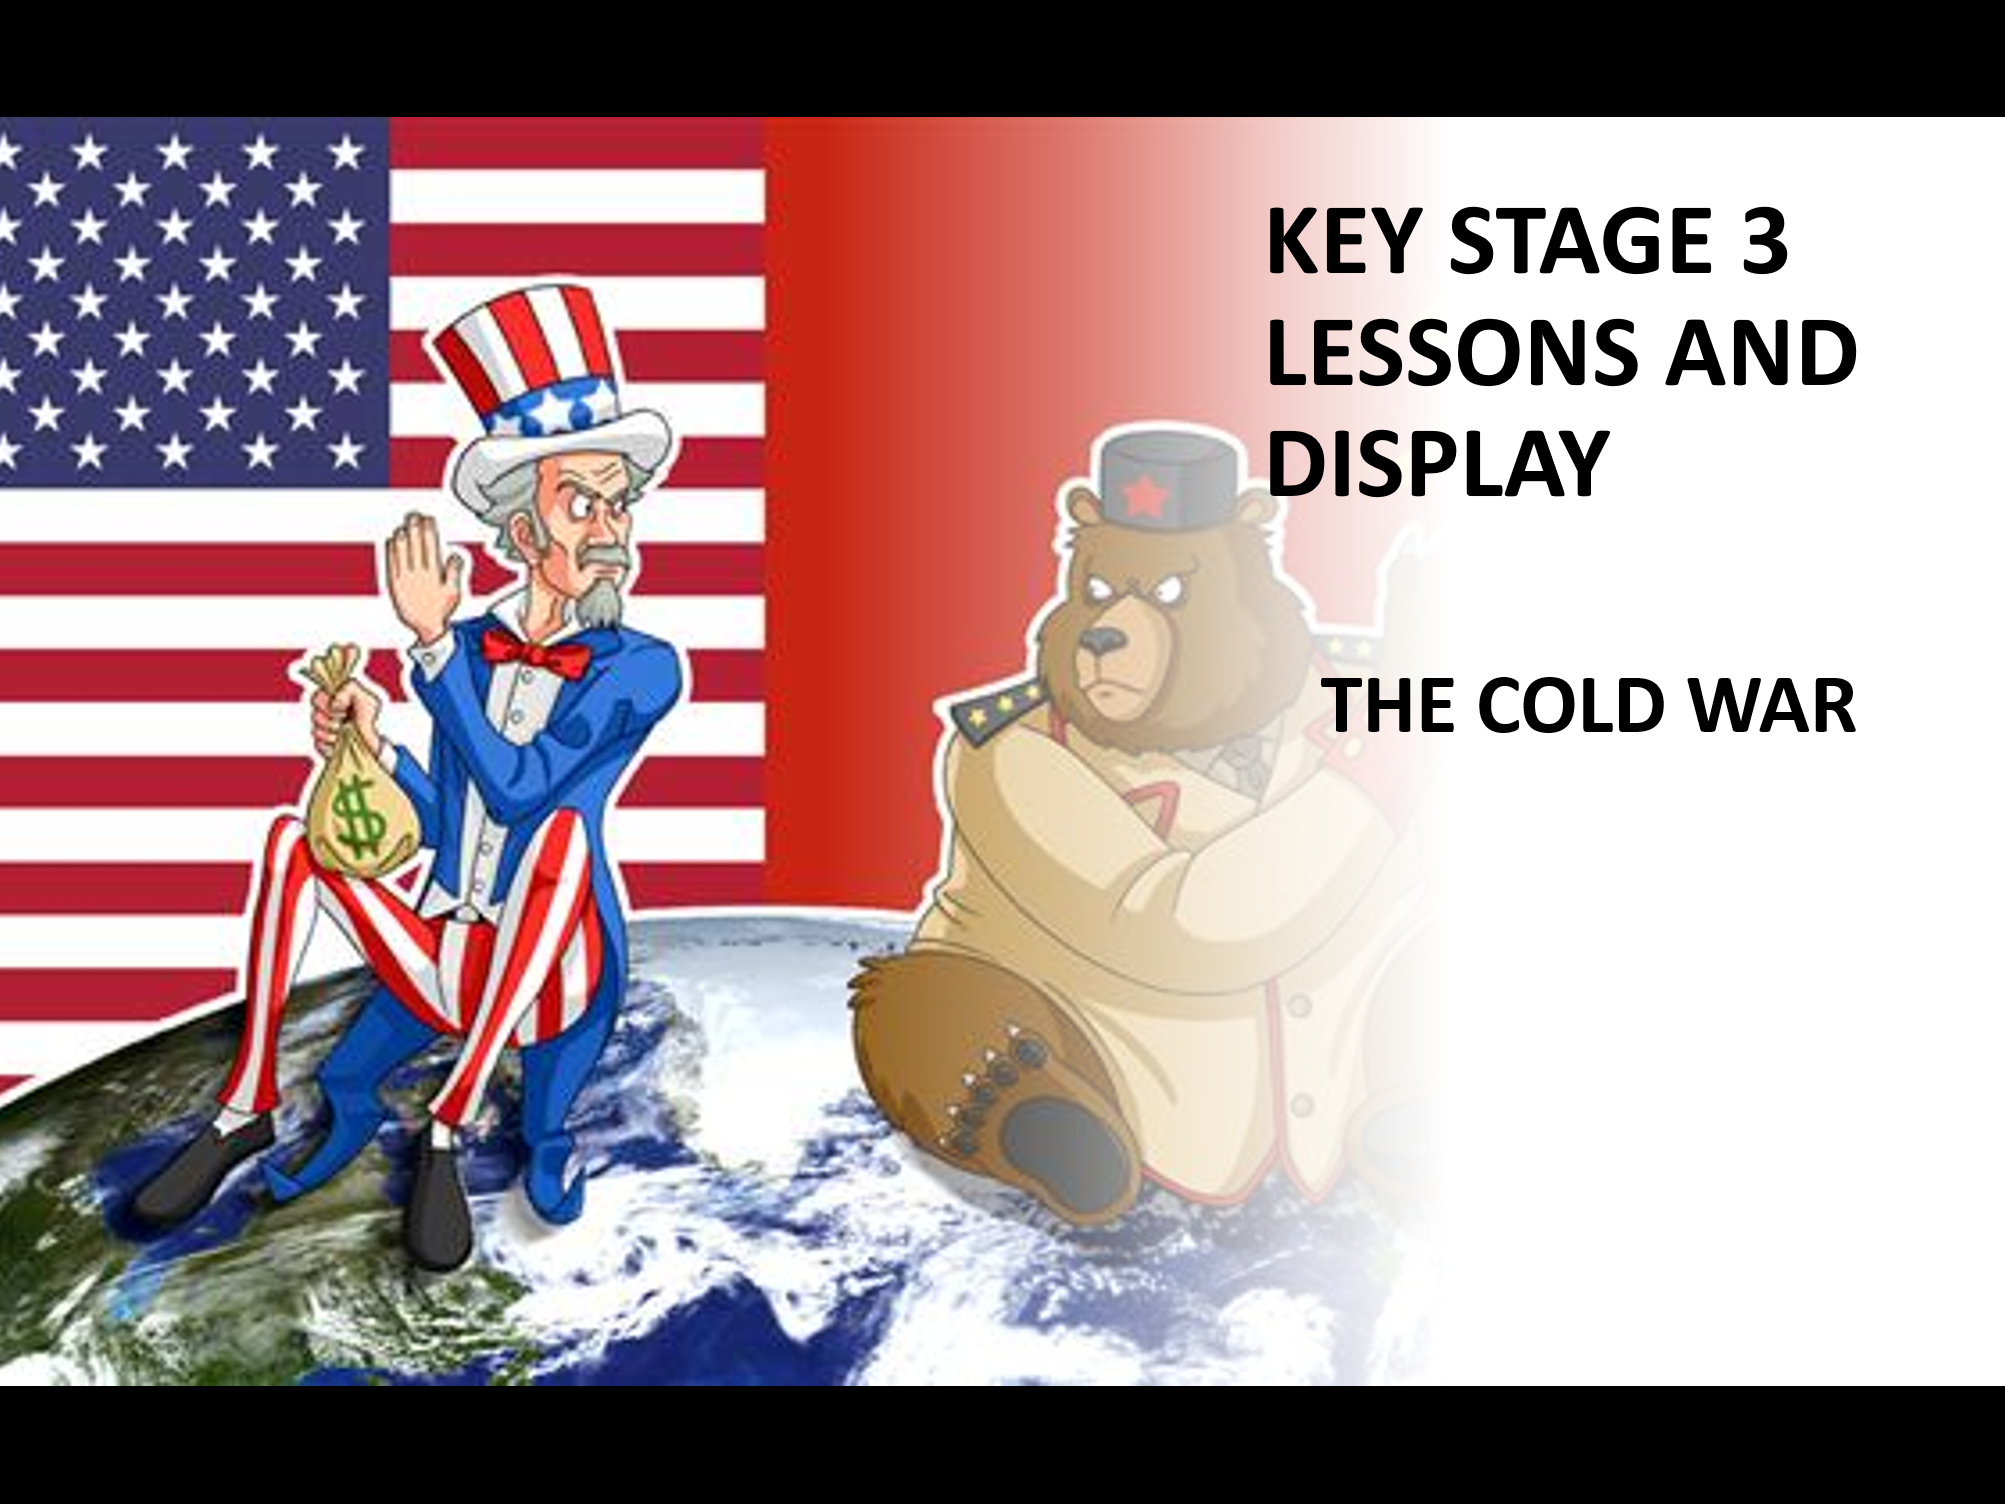 THE COLD WAR FOR KEY STAGE 3 PLUS A COLD WAR DISPLAY